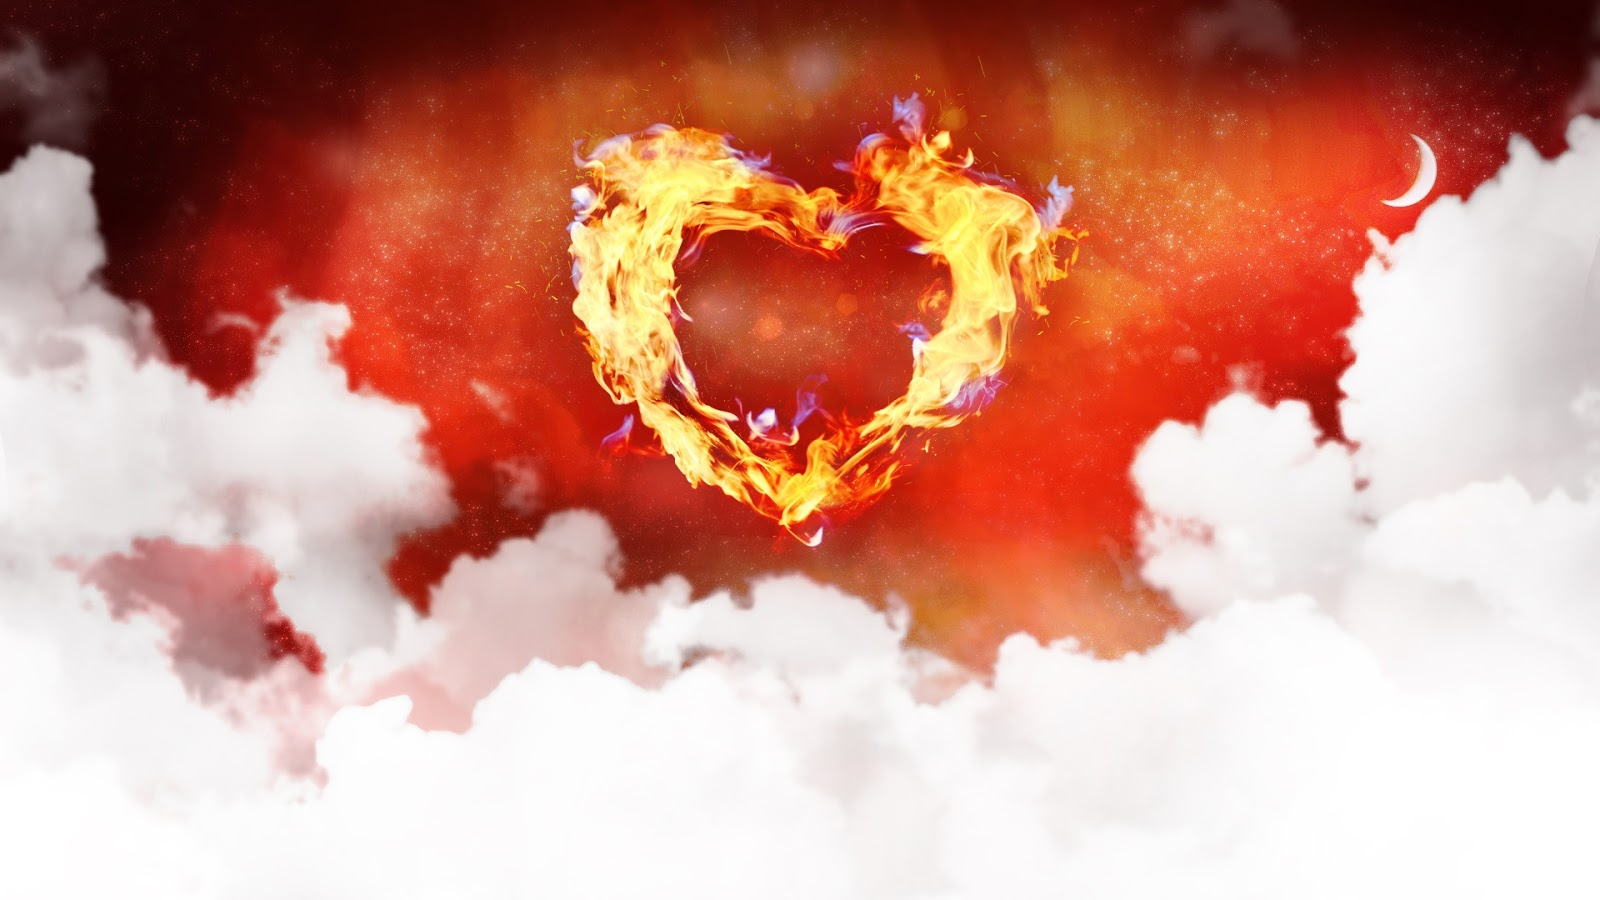 One Love Heart 1920x1080 Wallpaper